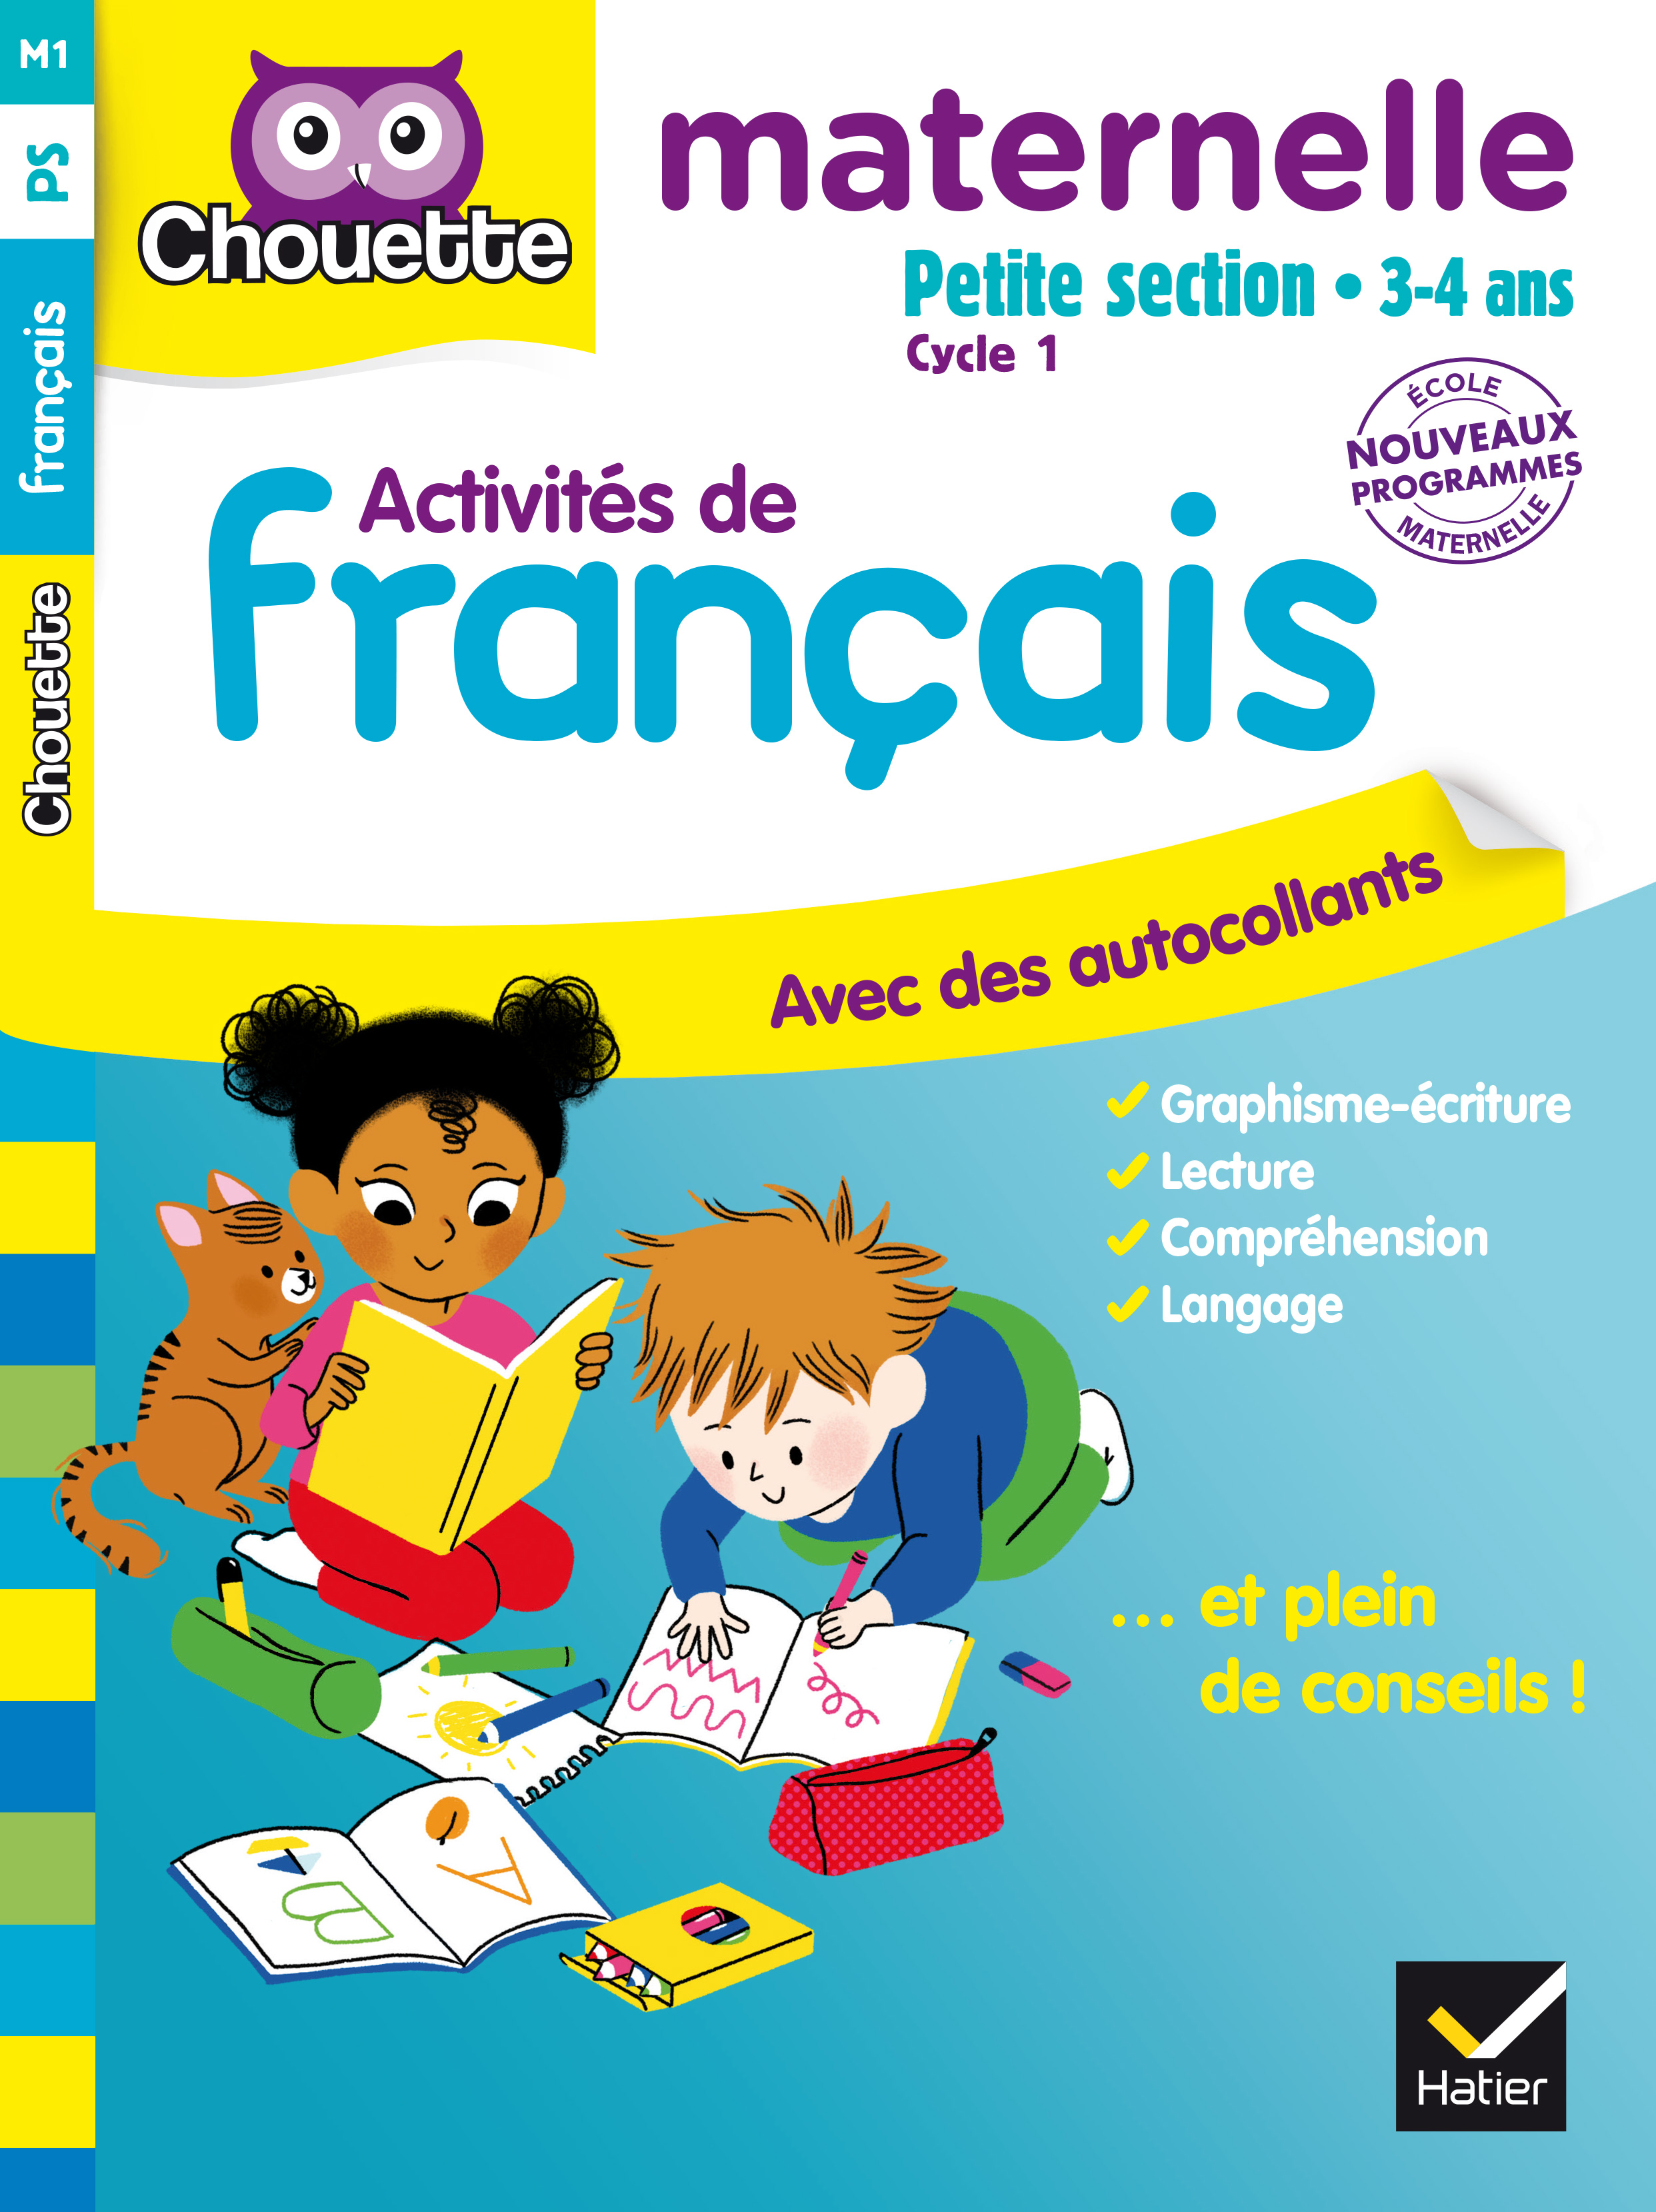 Collection Chouette Maternelle – Hatier Parascolaire